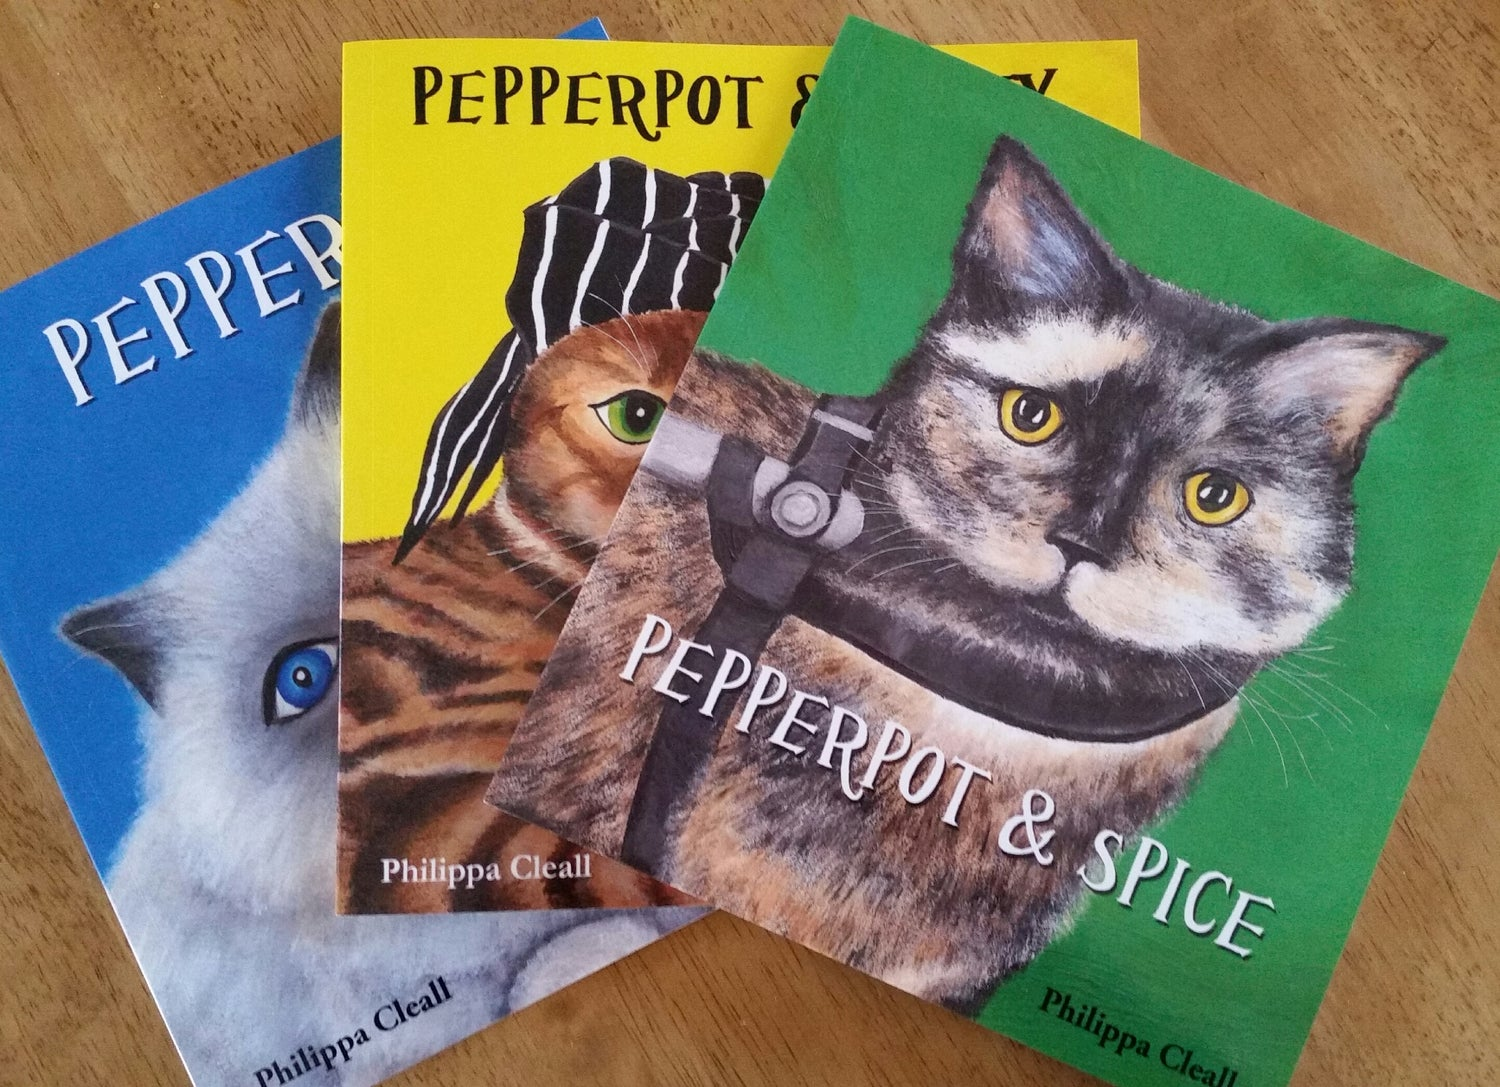 Image of Pepperpot book set